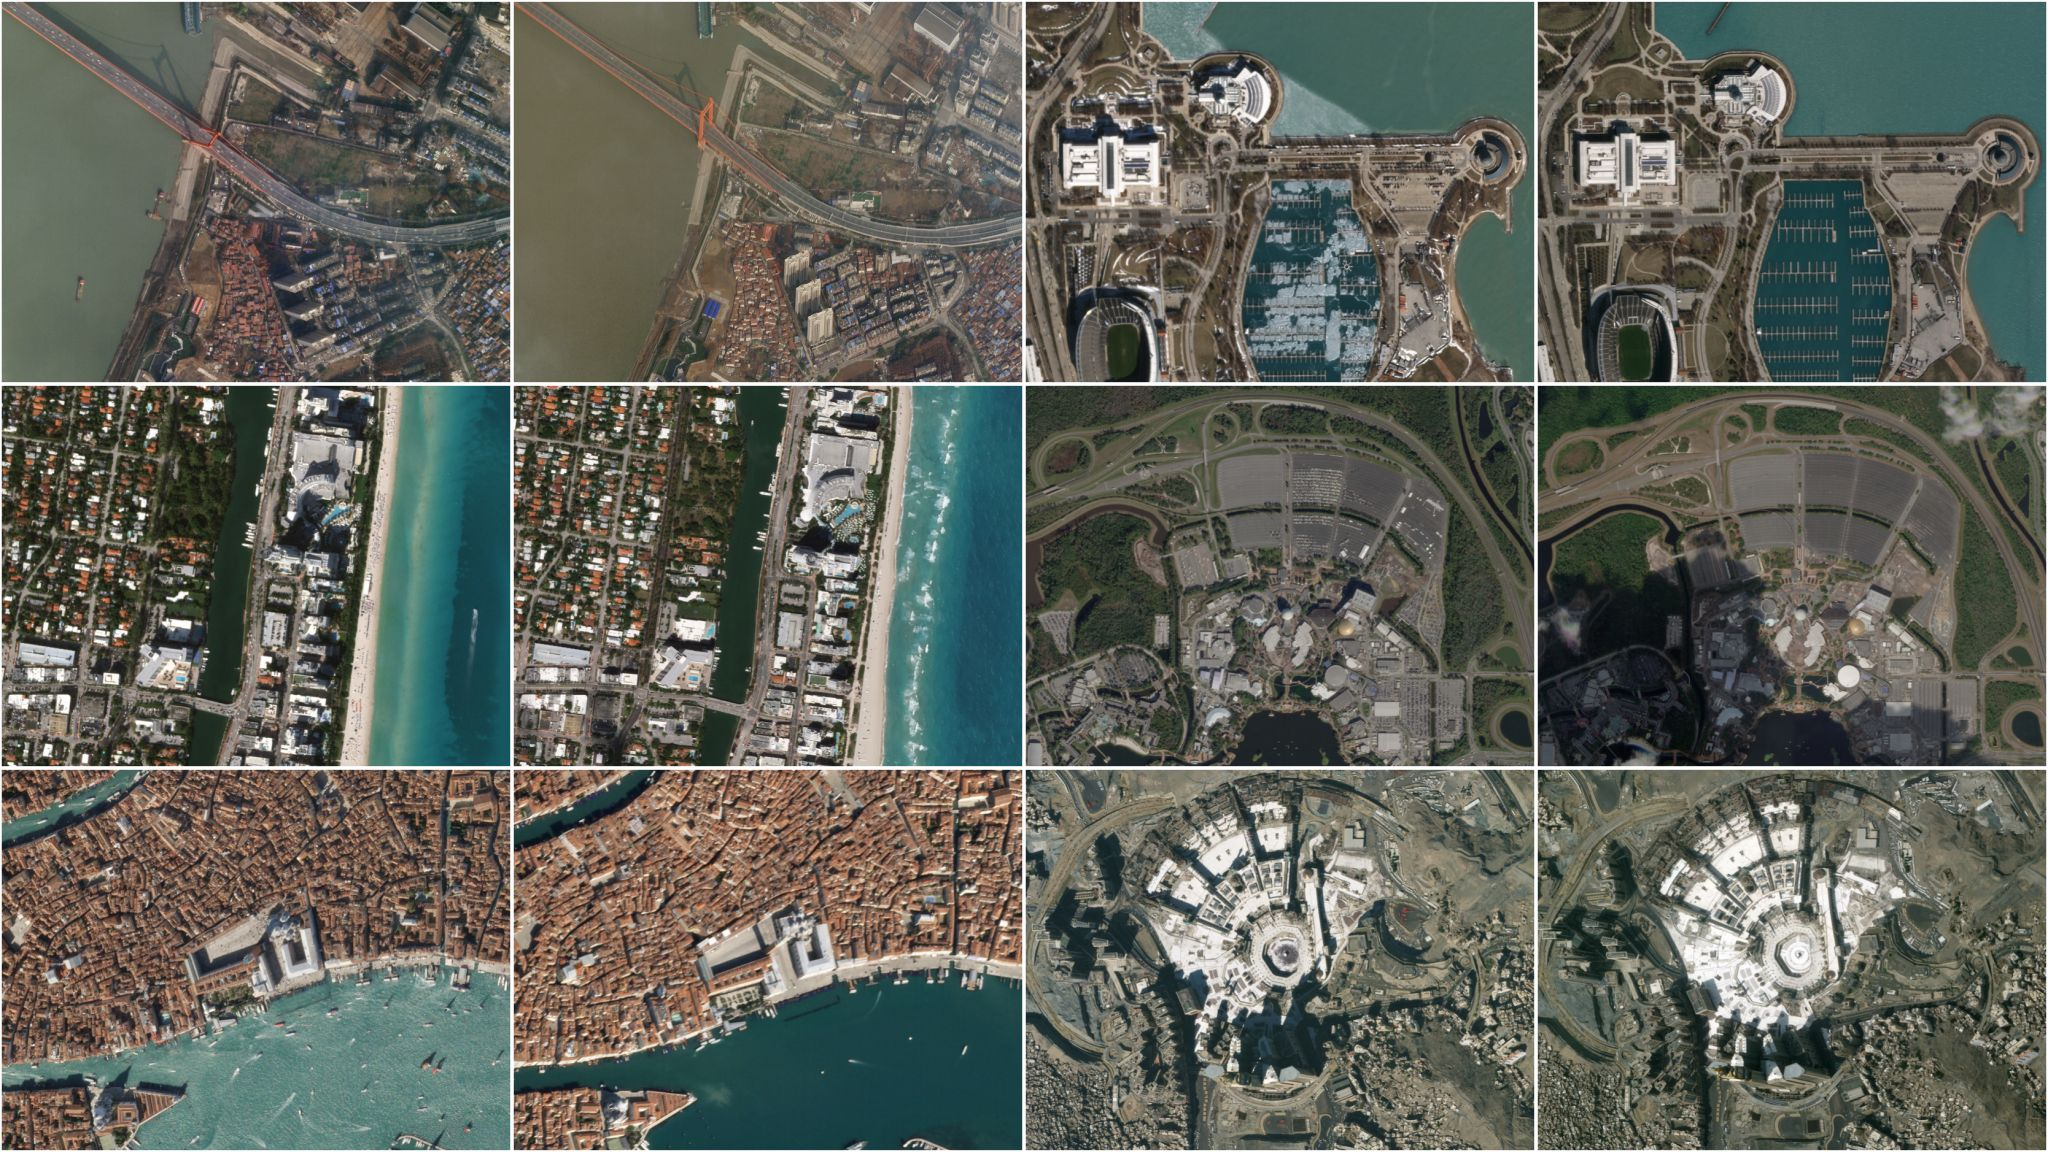 Flipboard Incredible satellite images show social distancing from 2048x1152